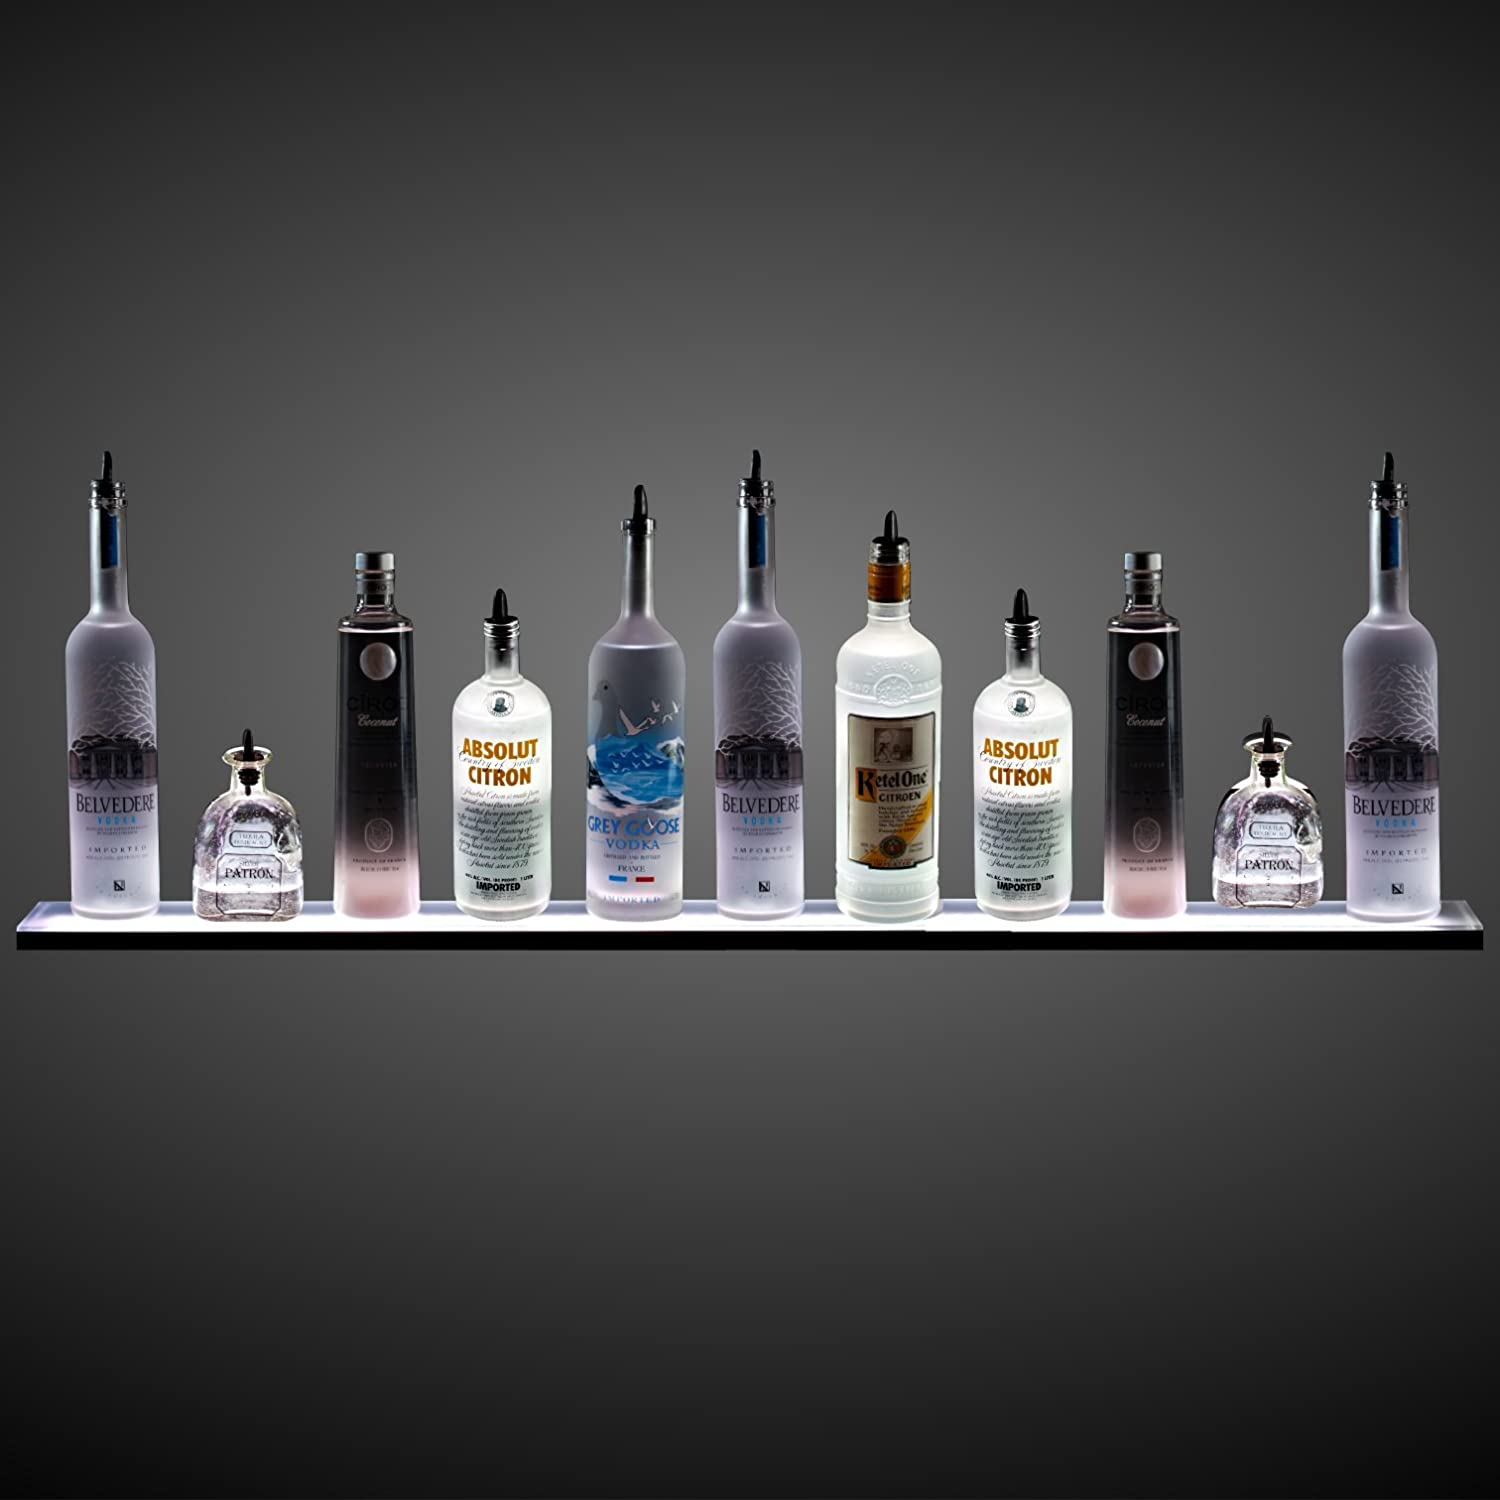 Amazon 3 wall mounted led liquor shelf with wireless rf amazon 3 wall mounted led liquor shelf with wireless rf remote home bar lighting kitchen dining amipublicfo Image collections